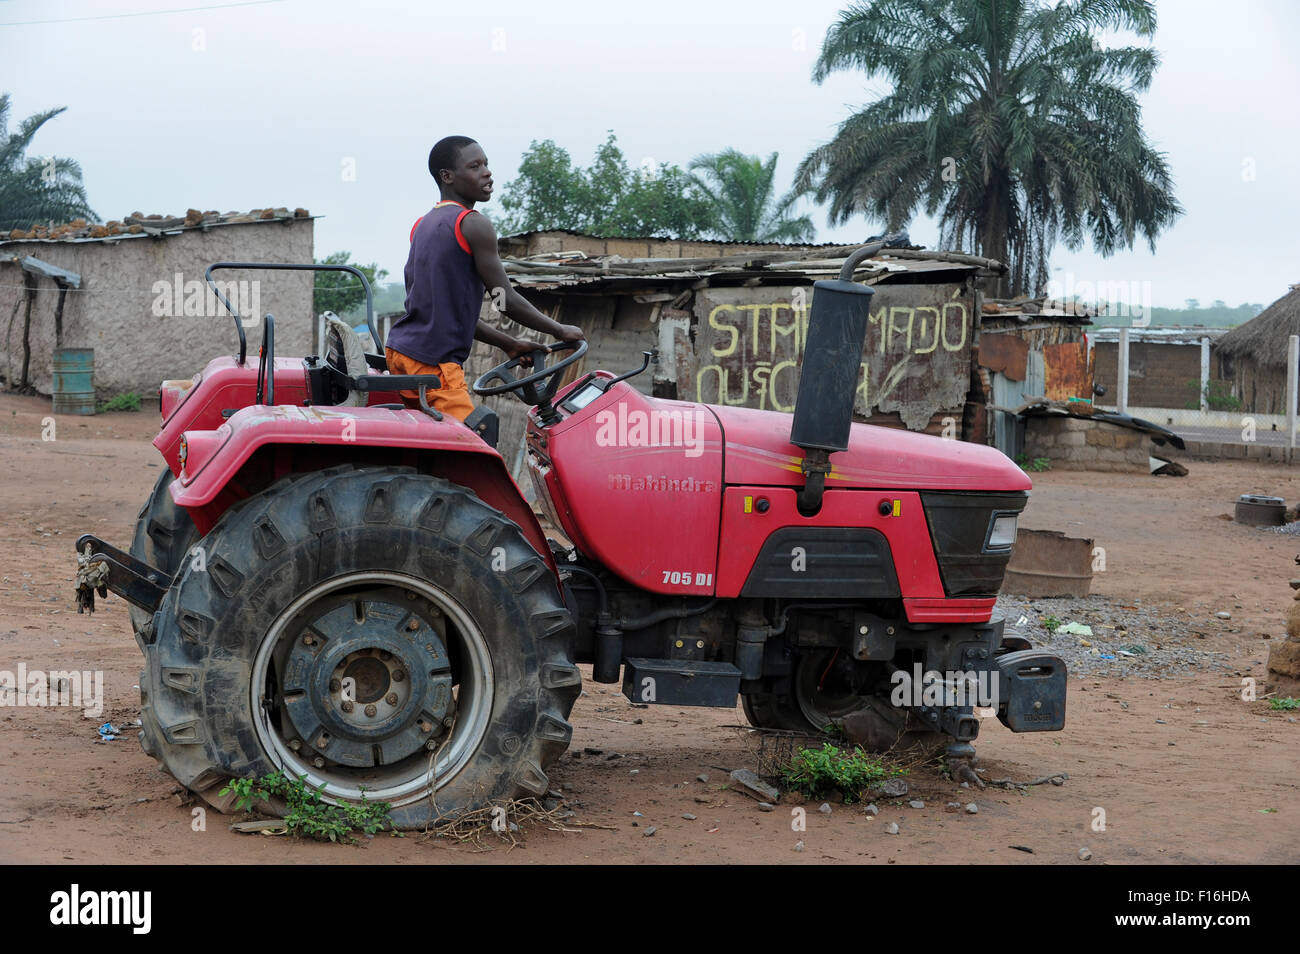 ANGOLA Malanje, 'election tractor' in many villages new tractors were given to chiefs by the ruling party - Stock Image